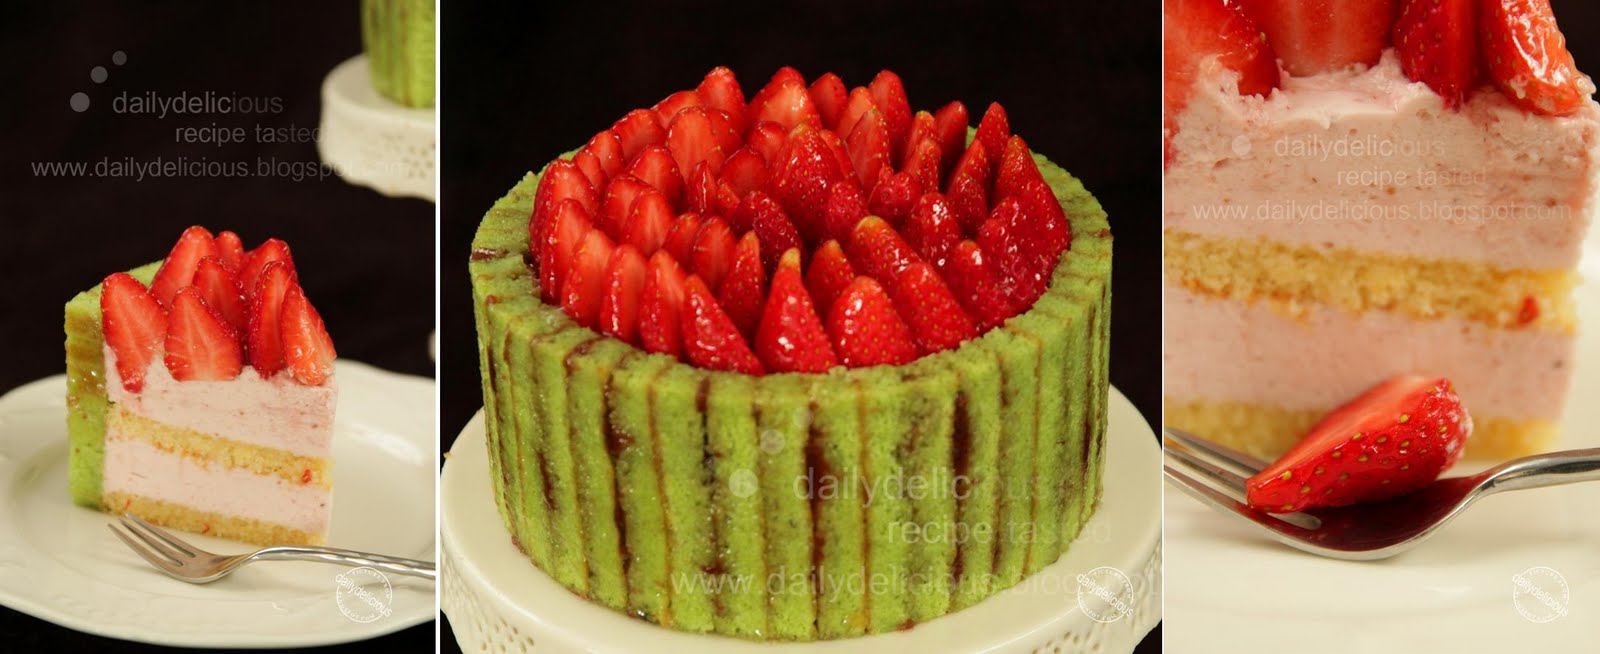 dailydelicious: Strawberry Pistachio Charlotte: My Cute ...